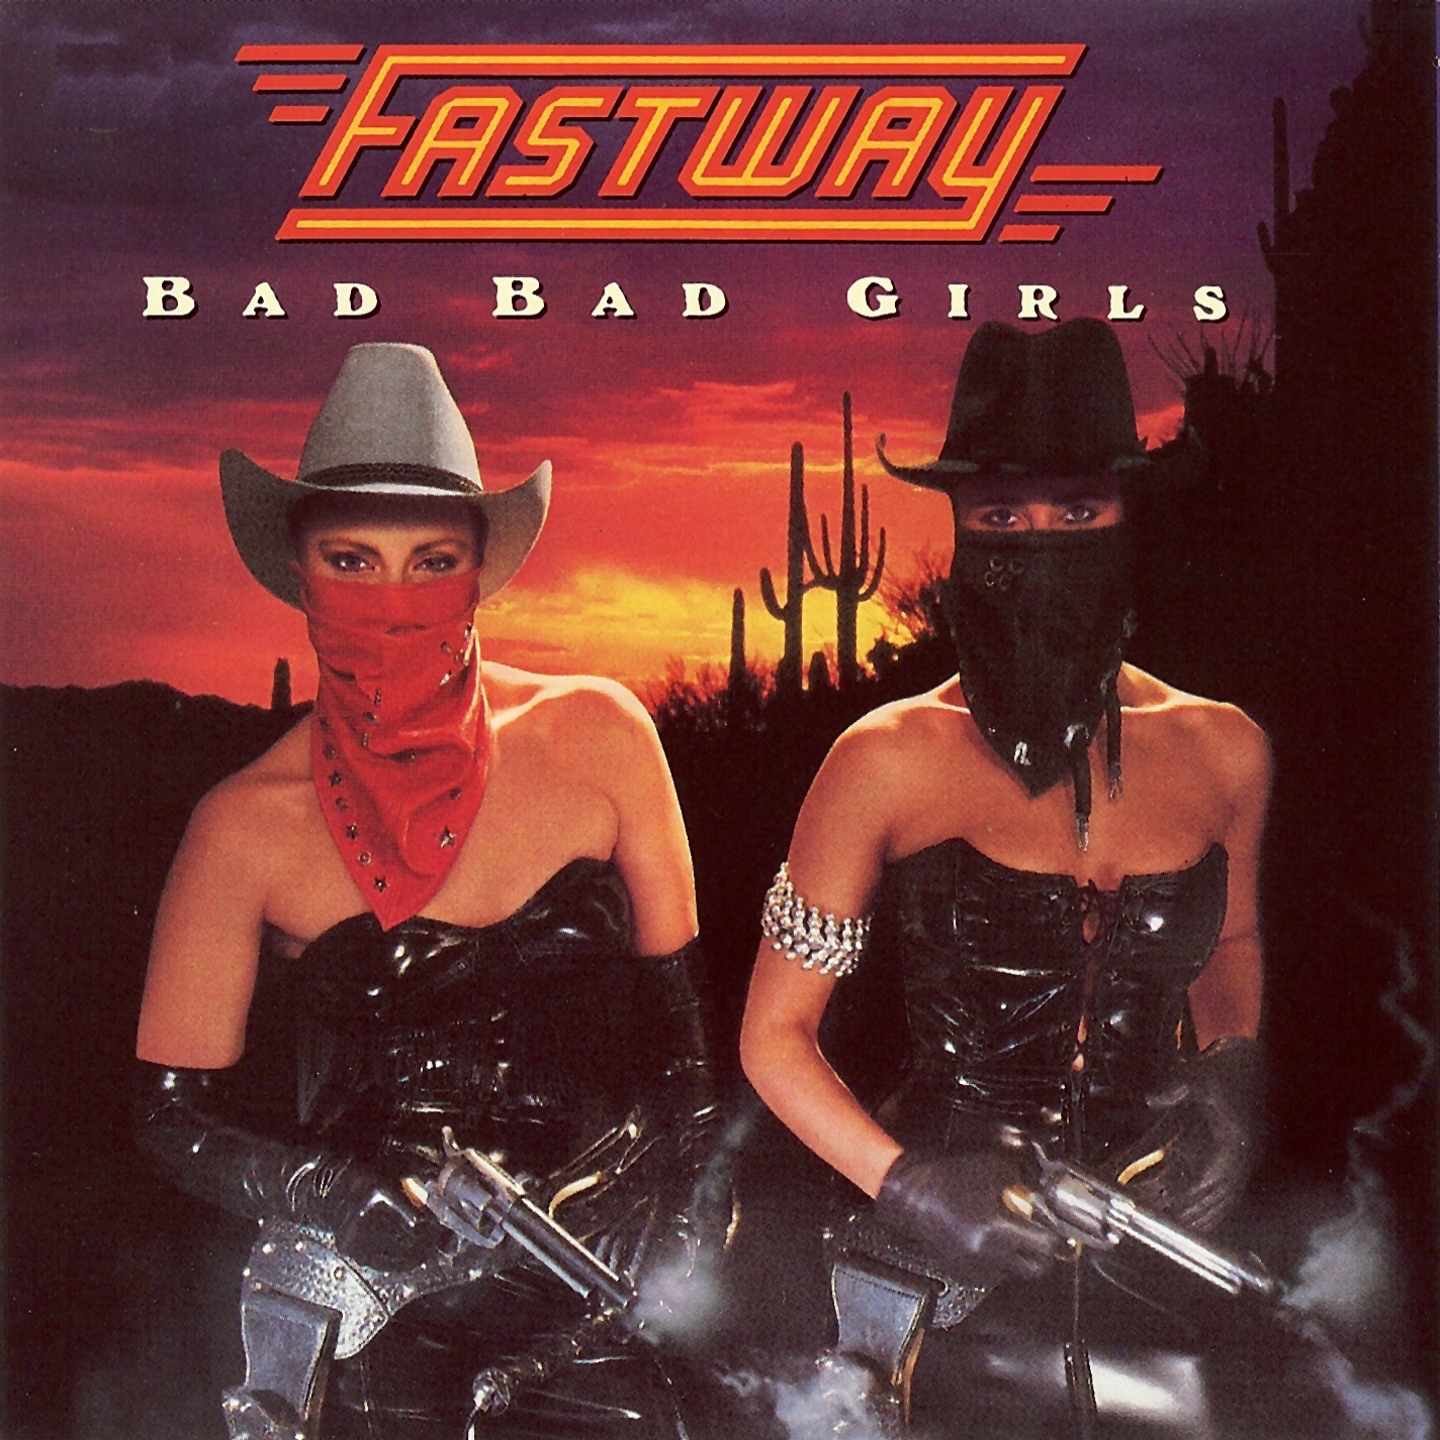 Bad Bad Girls